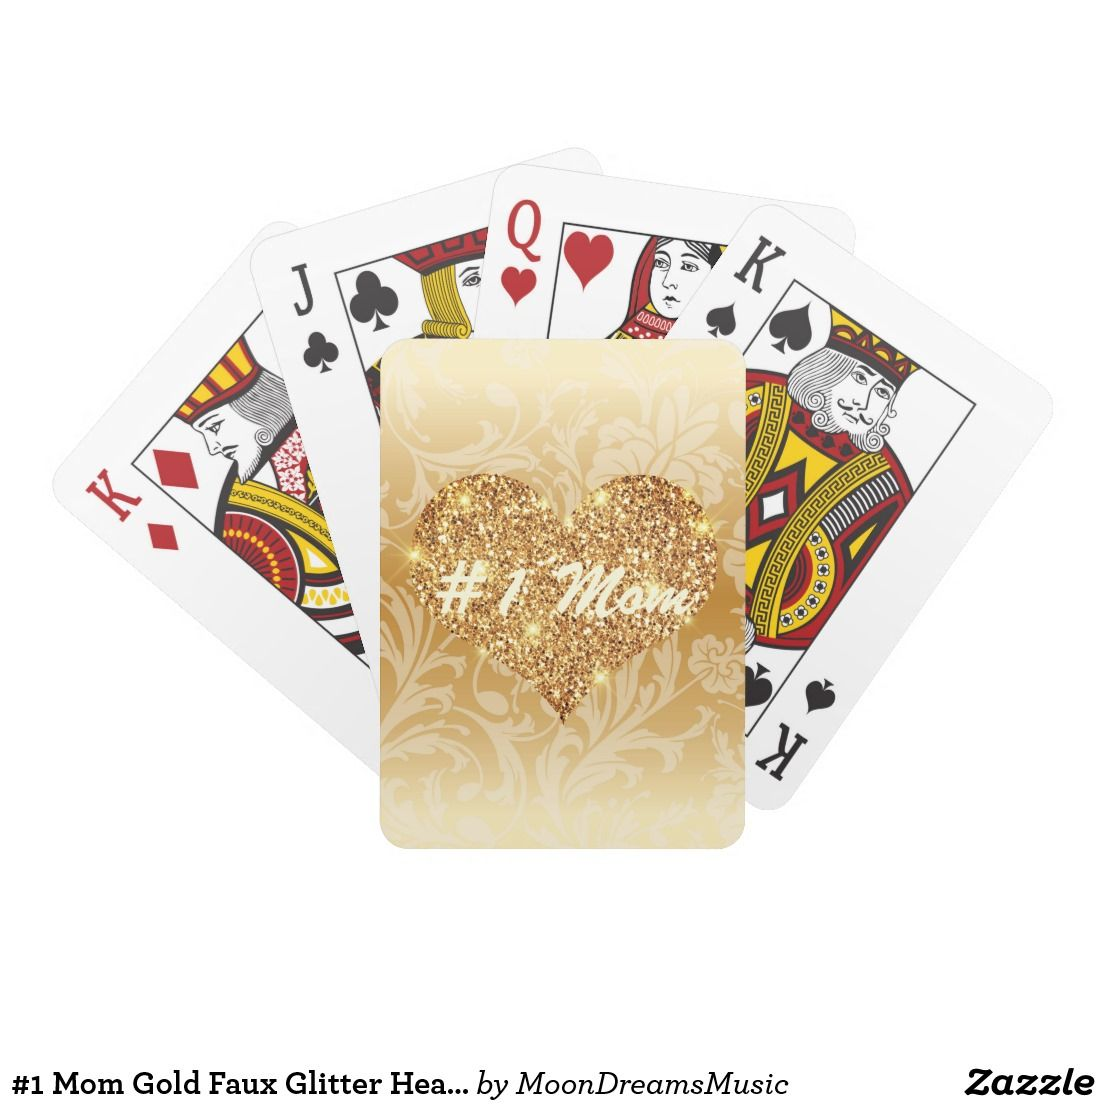 #1Mom #GoldFauxGlitterHeart #Floral #PlayingCards by #MoonDreamsDesigns #MothersDayGift #GiftForMom